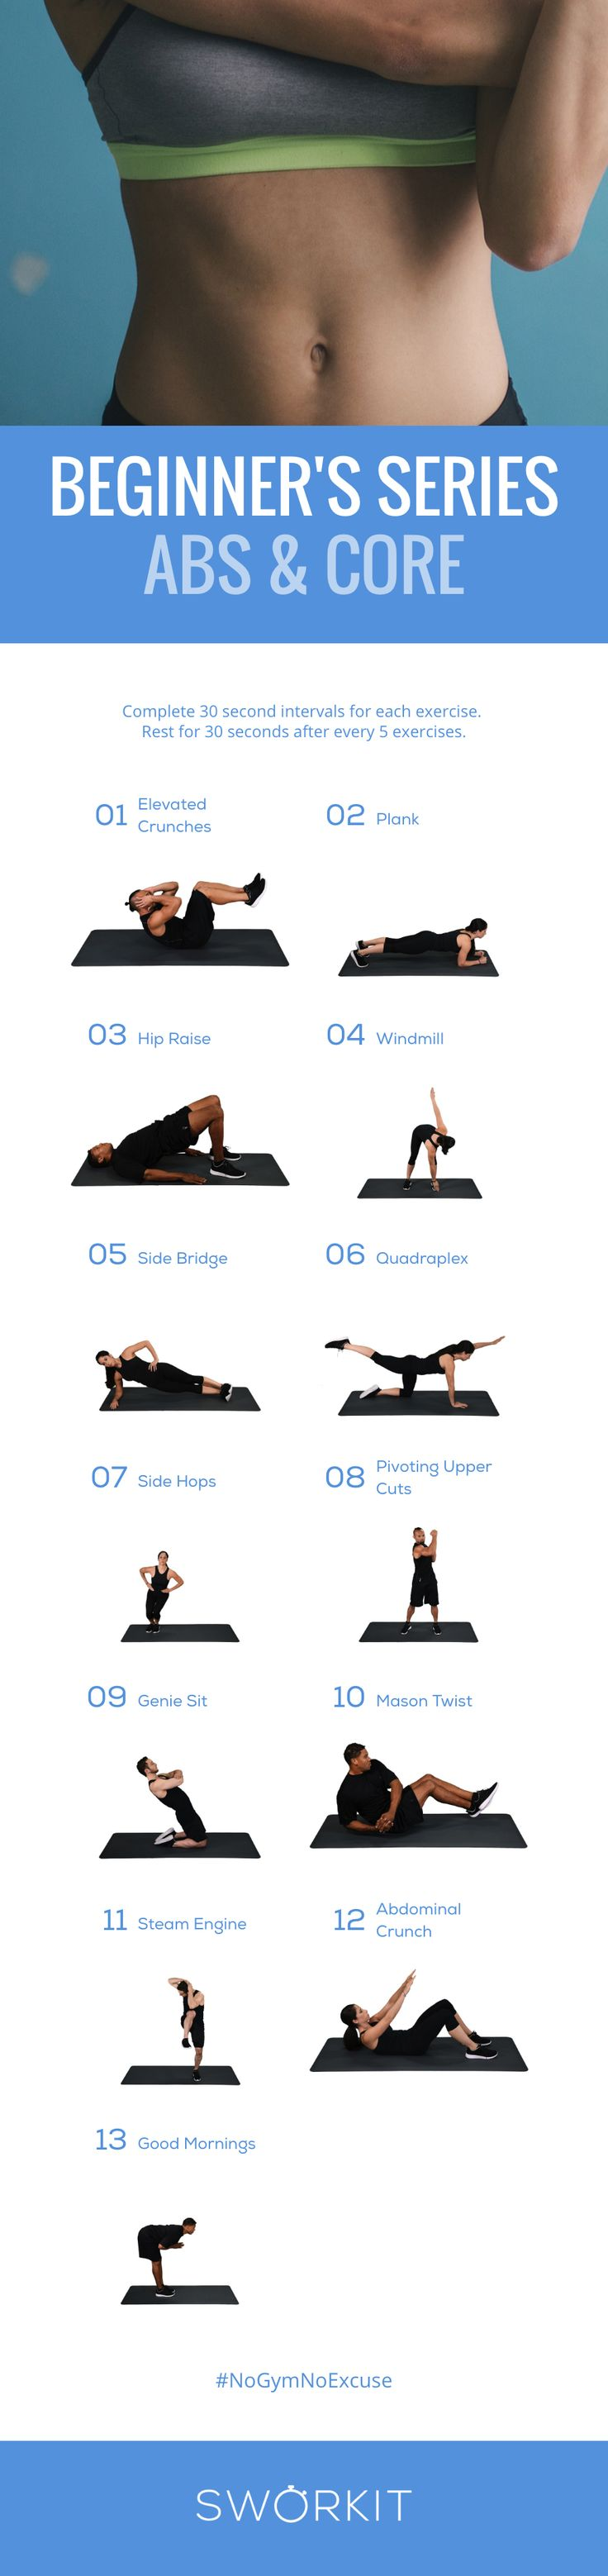 A low intensity workout for abs and core. Sworkit provides personalized video workouts that fit your life. Try this workout on iOS and Android today. Never get bored, never have an excuse.